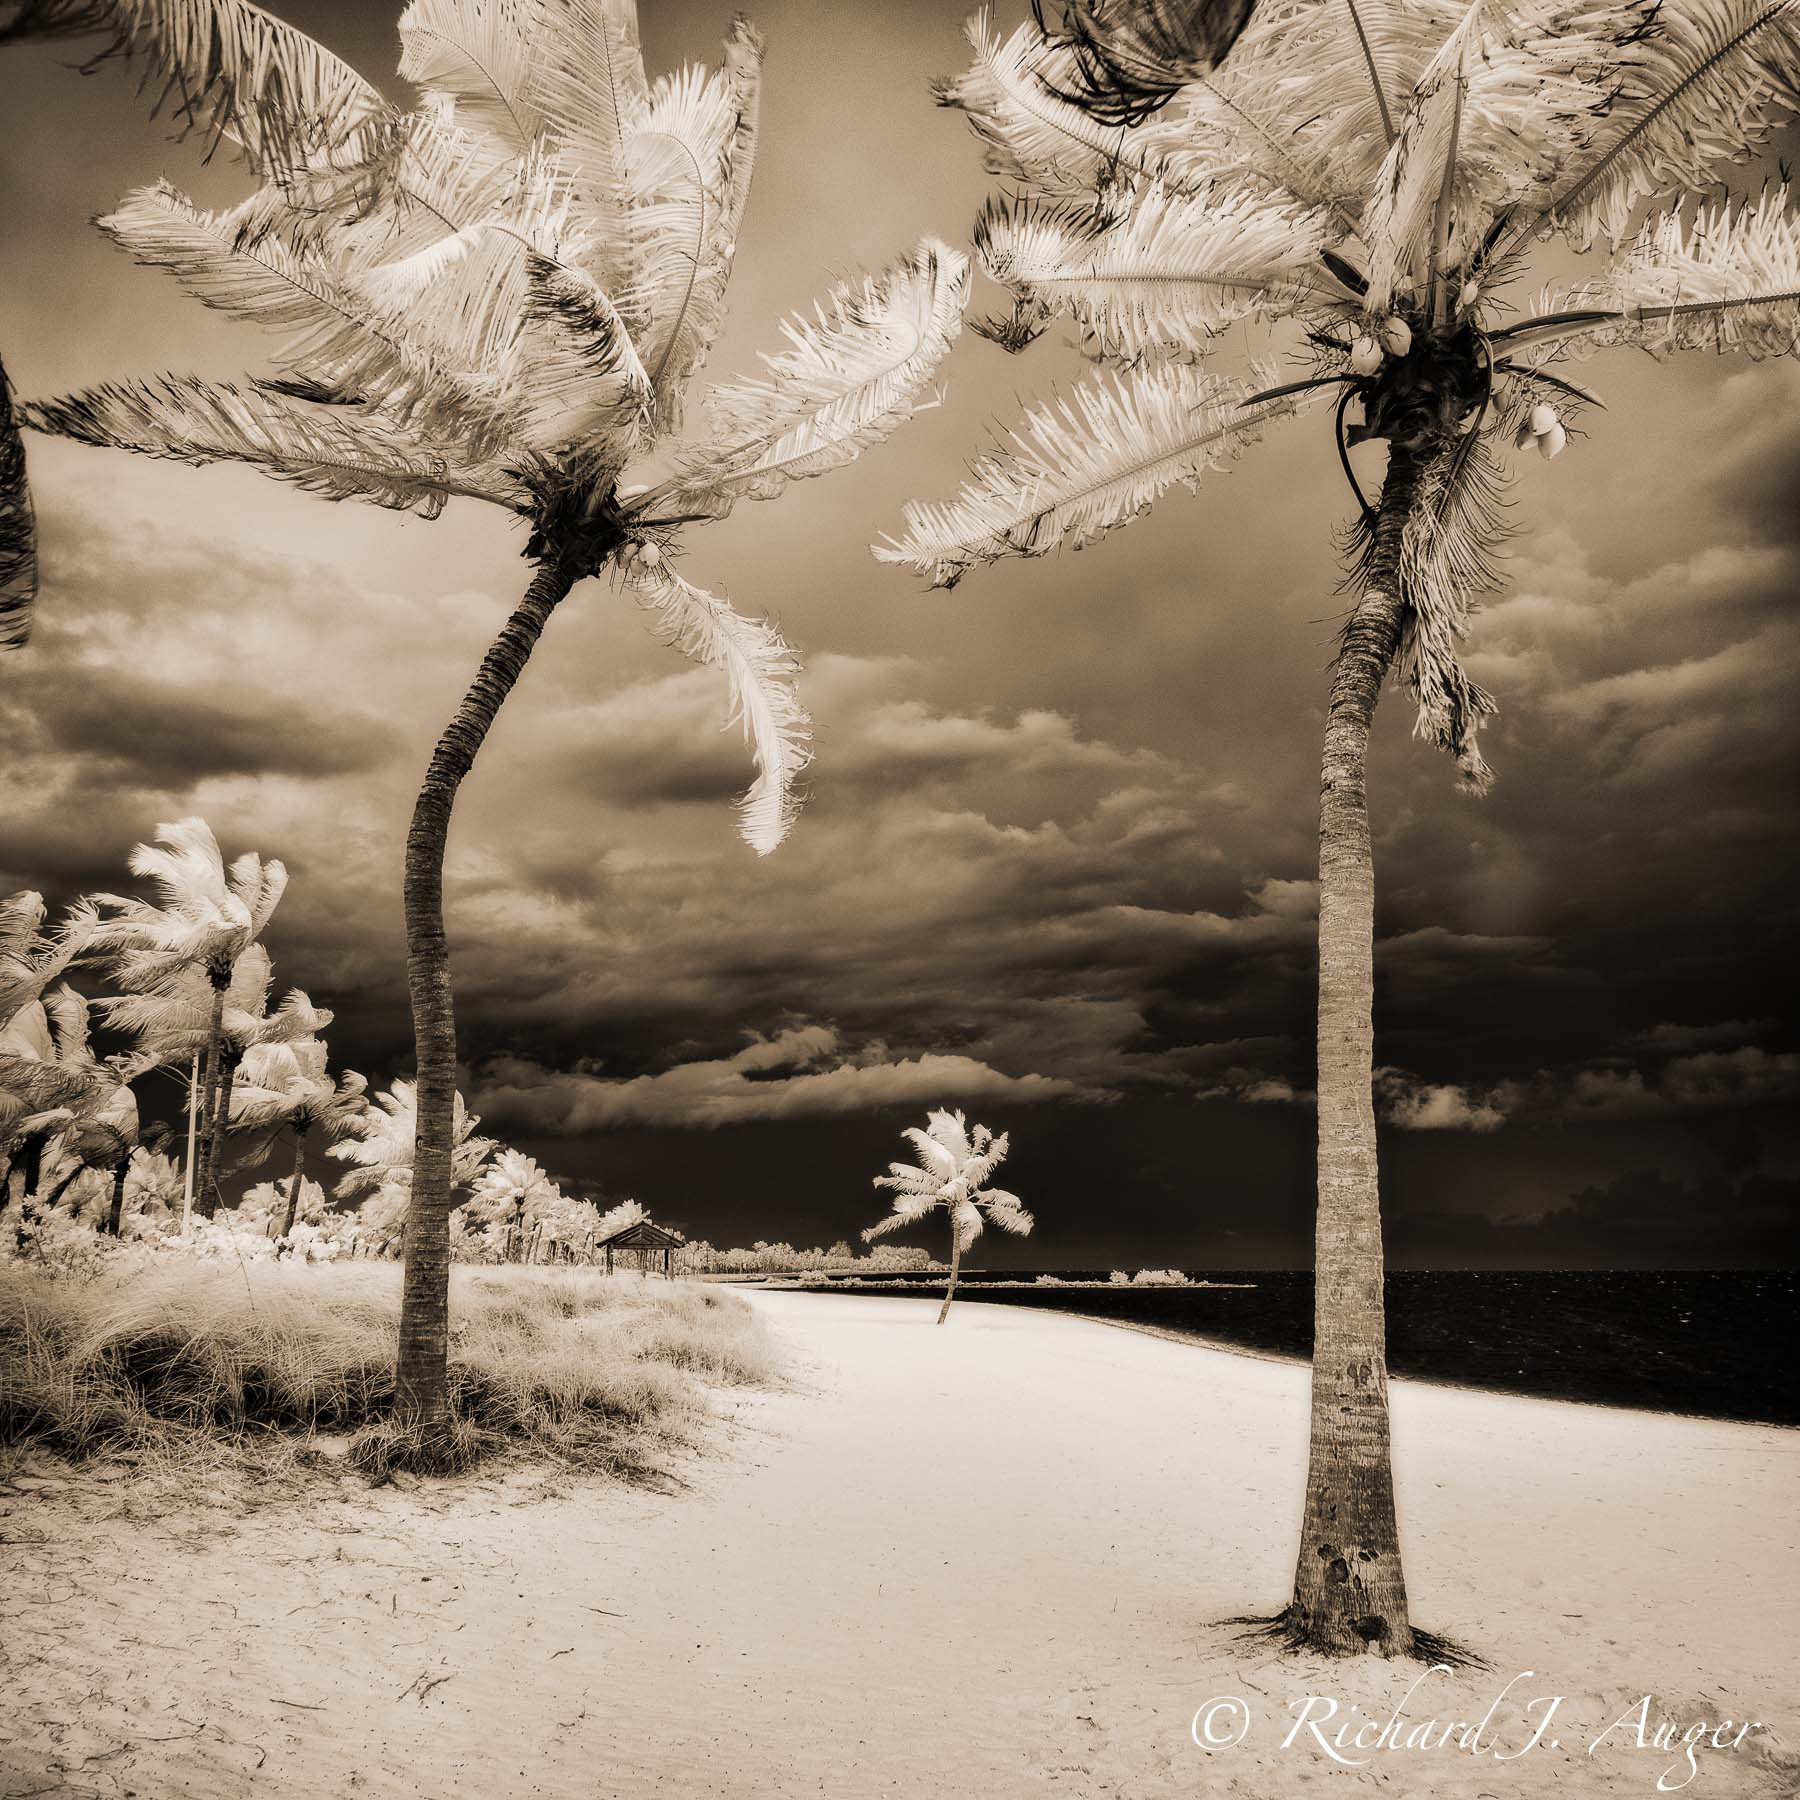 Smathers Beach, Key West, Florida, Palm Trees, stormy, infrared, ocean, landscape, photographer, photography, sepia tone, square